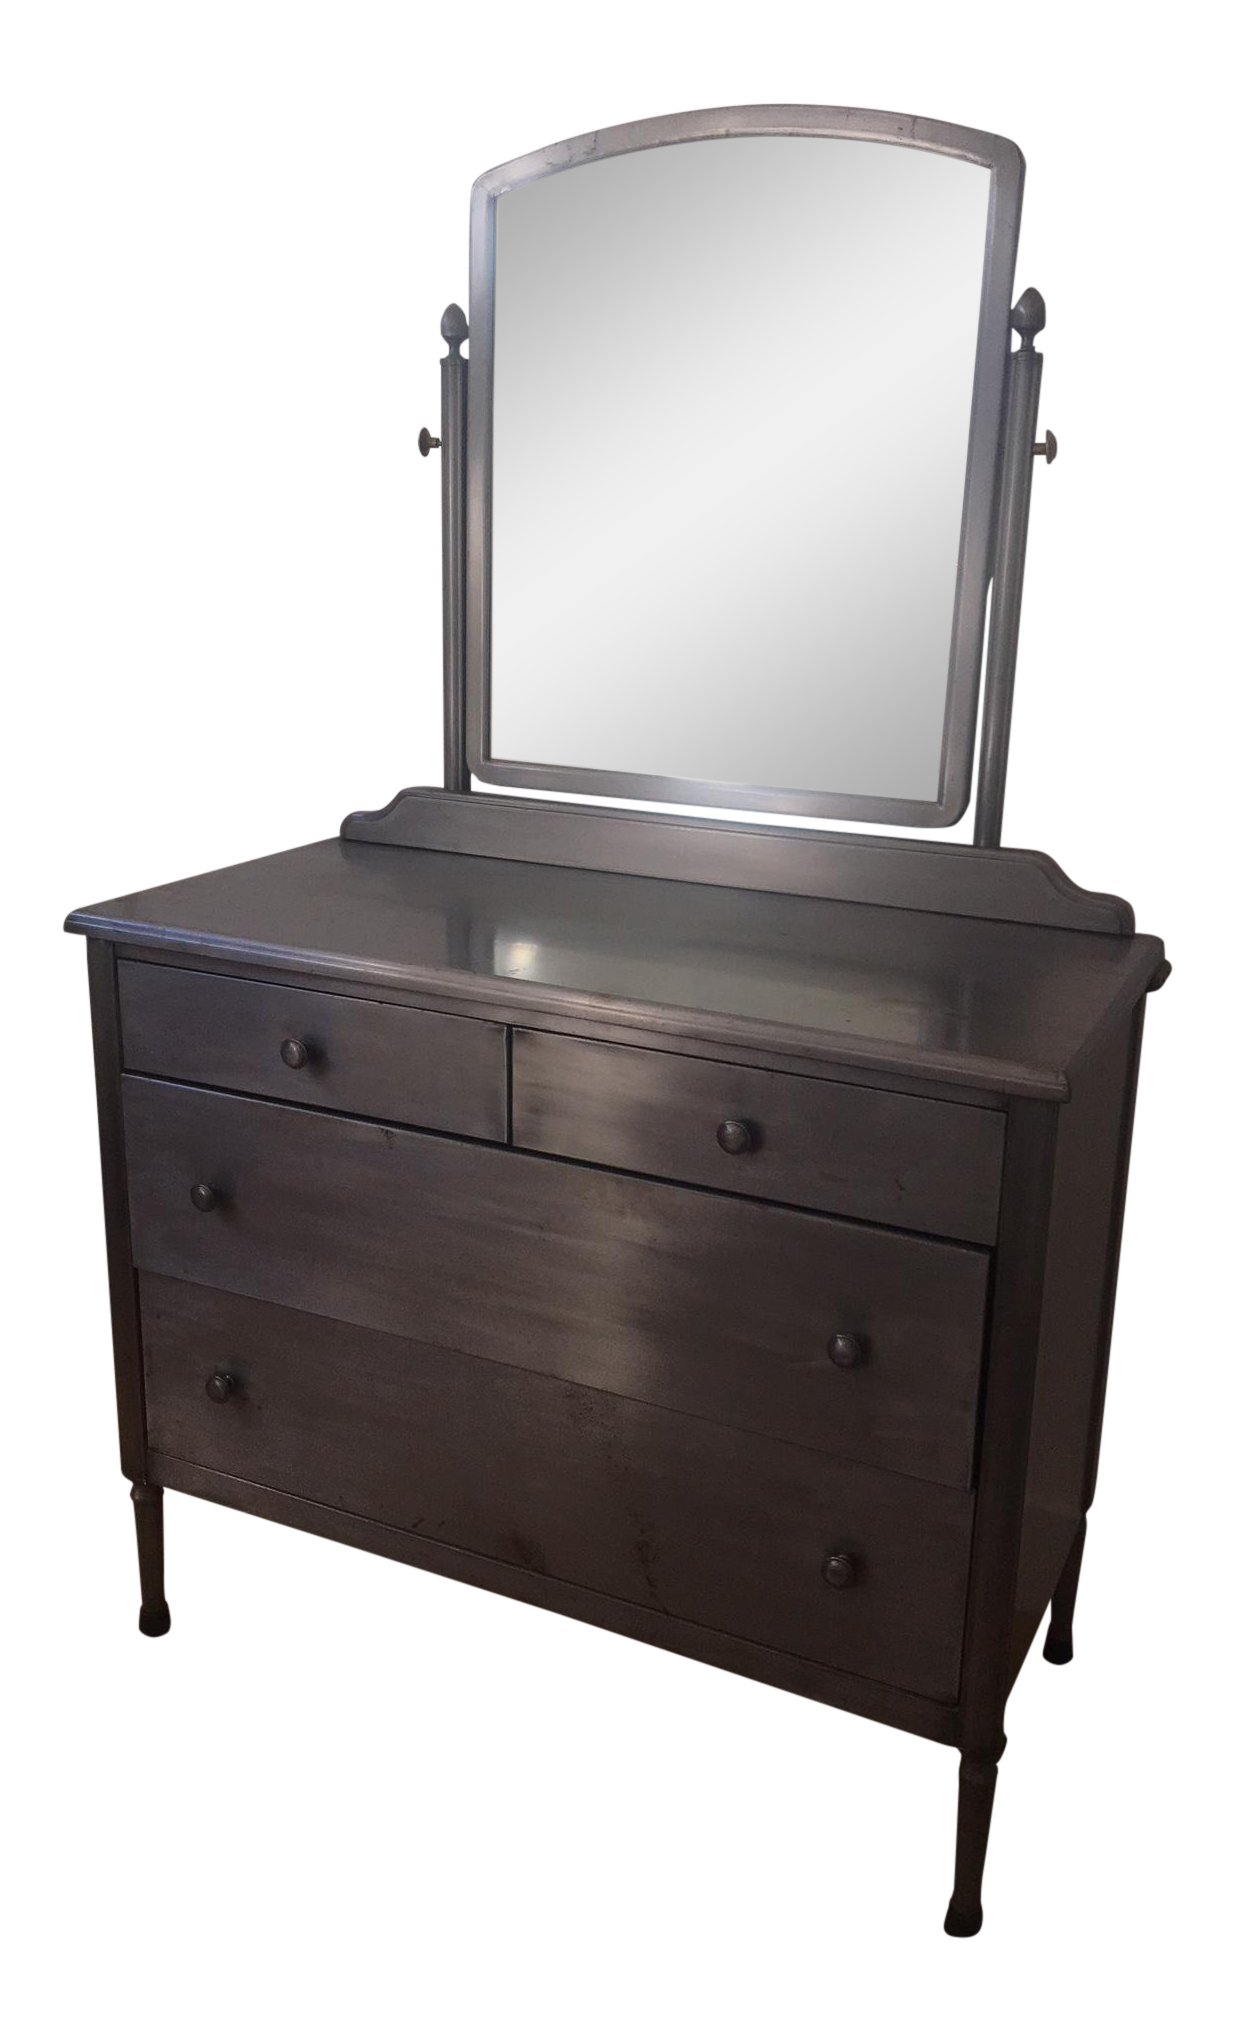 vtg 1940 50s simmons furniture metal medical. Simmons Style Distressed Industrial Metal Chest Of Drawers With Mirror Vtg 1940 50s Furniture Medical